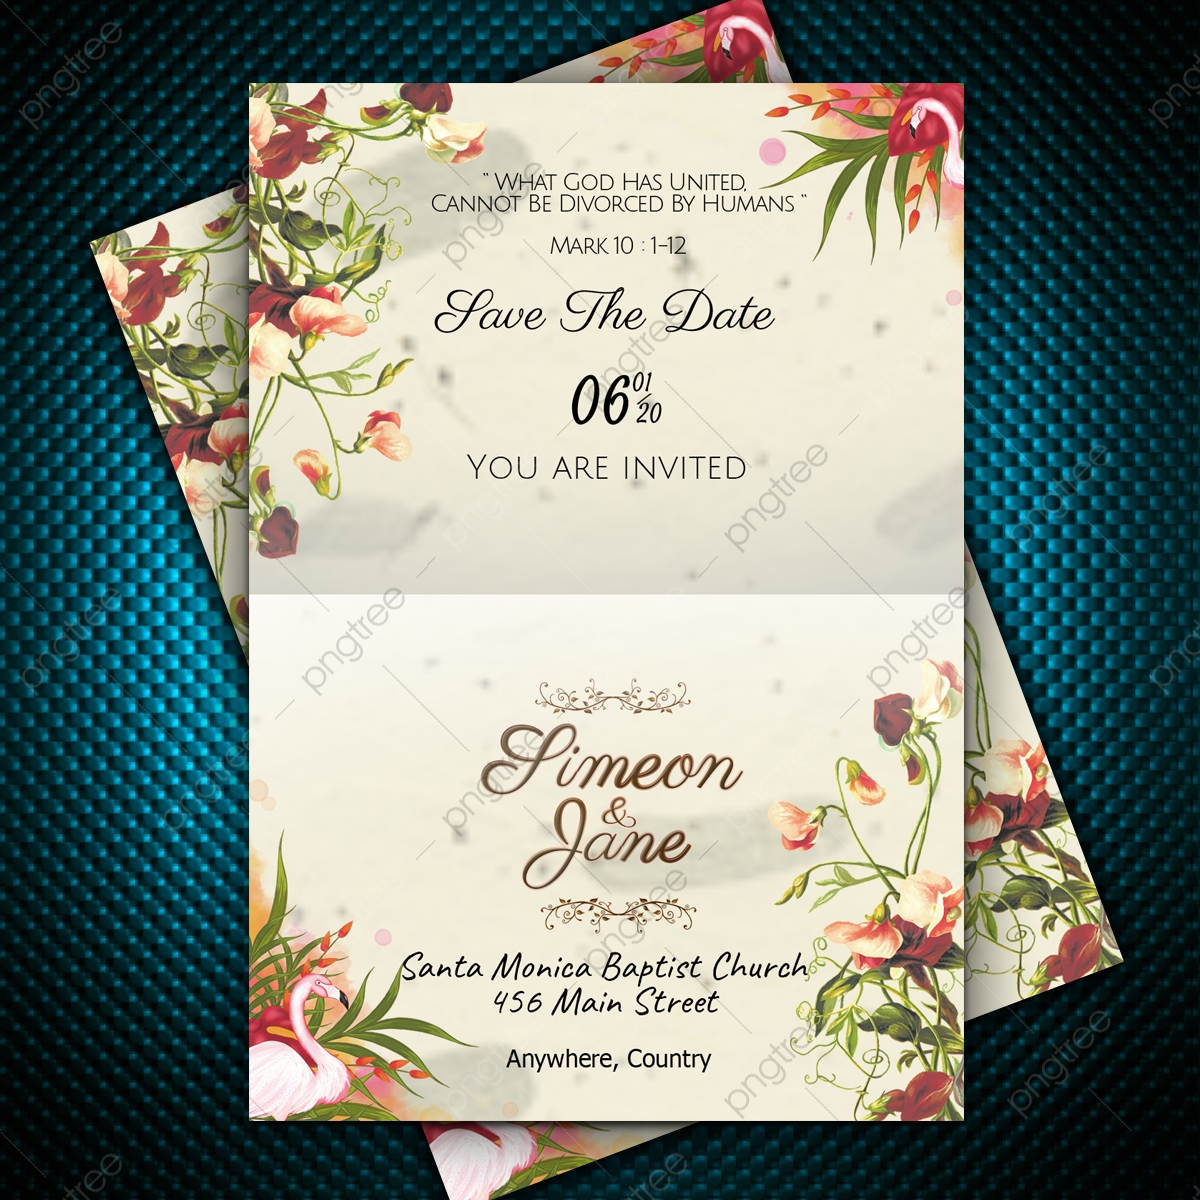 Classic Vintage Design Wedding Invitation Card With Cute Floral Decoration Template Download On Pngtree